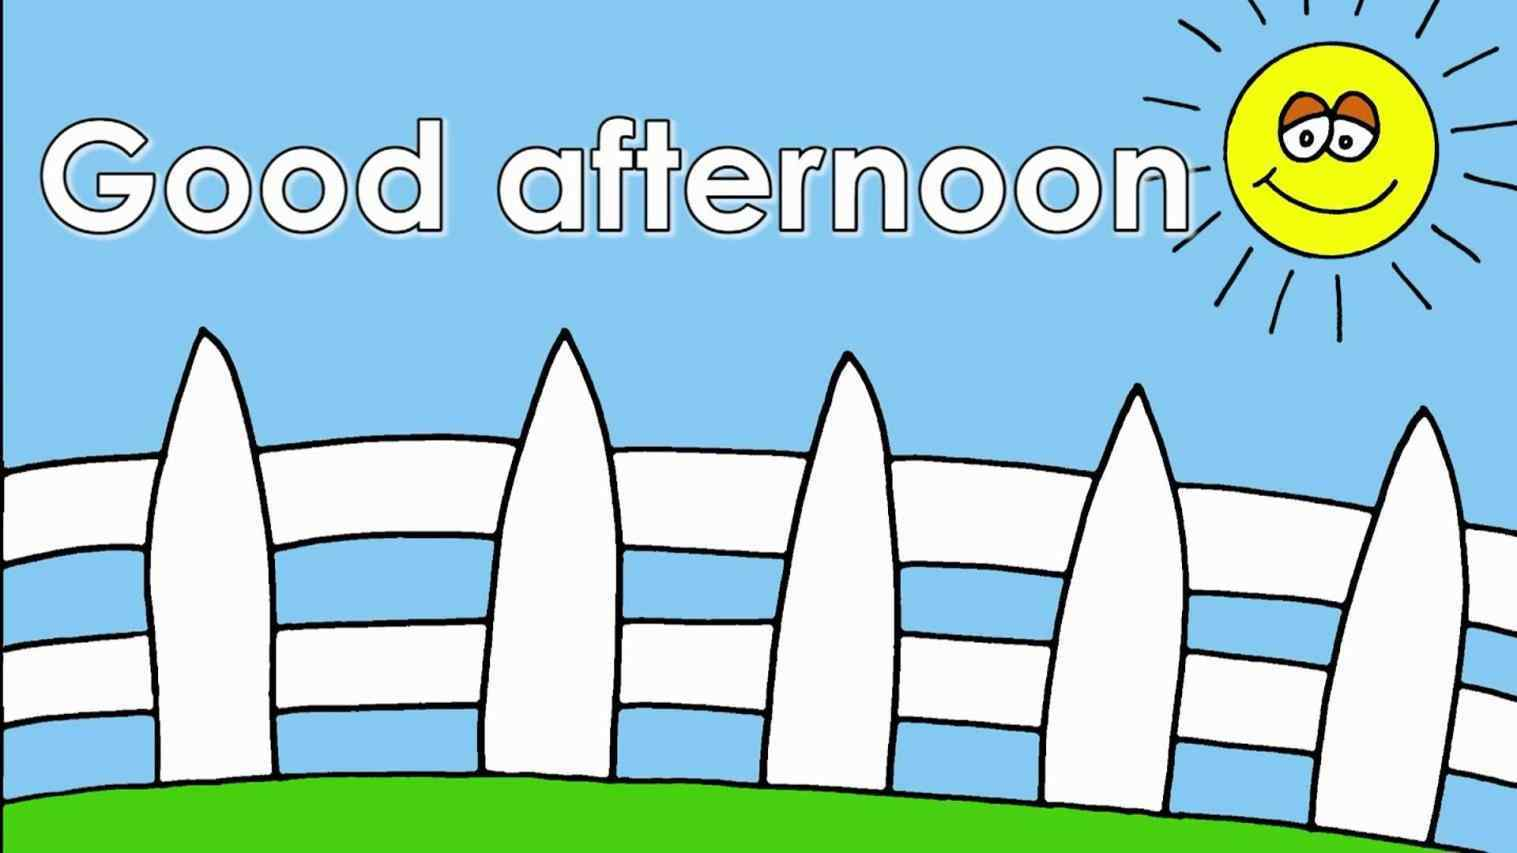 Good Good Afternoon Clipart Afternoon Cl-Good good afternoon clipart afternoon clipart stationrhclipartstationcom  free download best rhclipartmagcom good good afternoon clipart afternoon-17